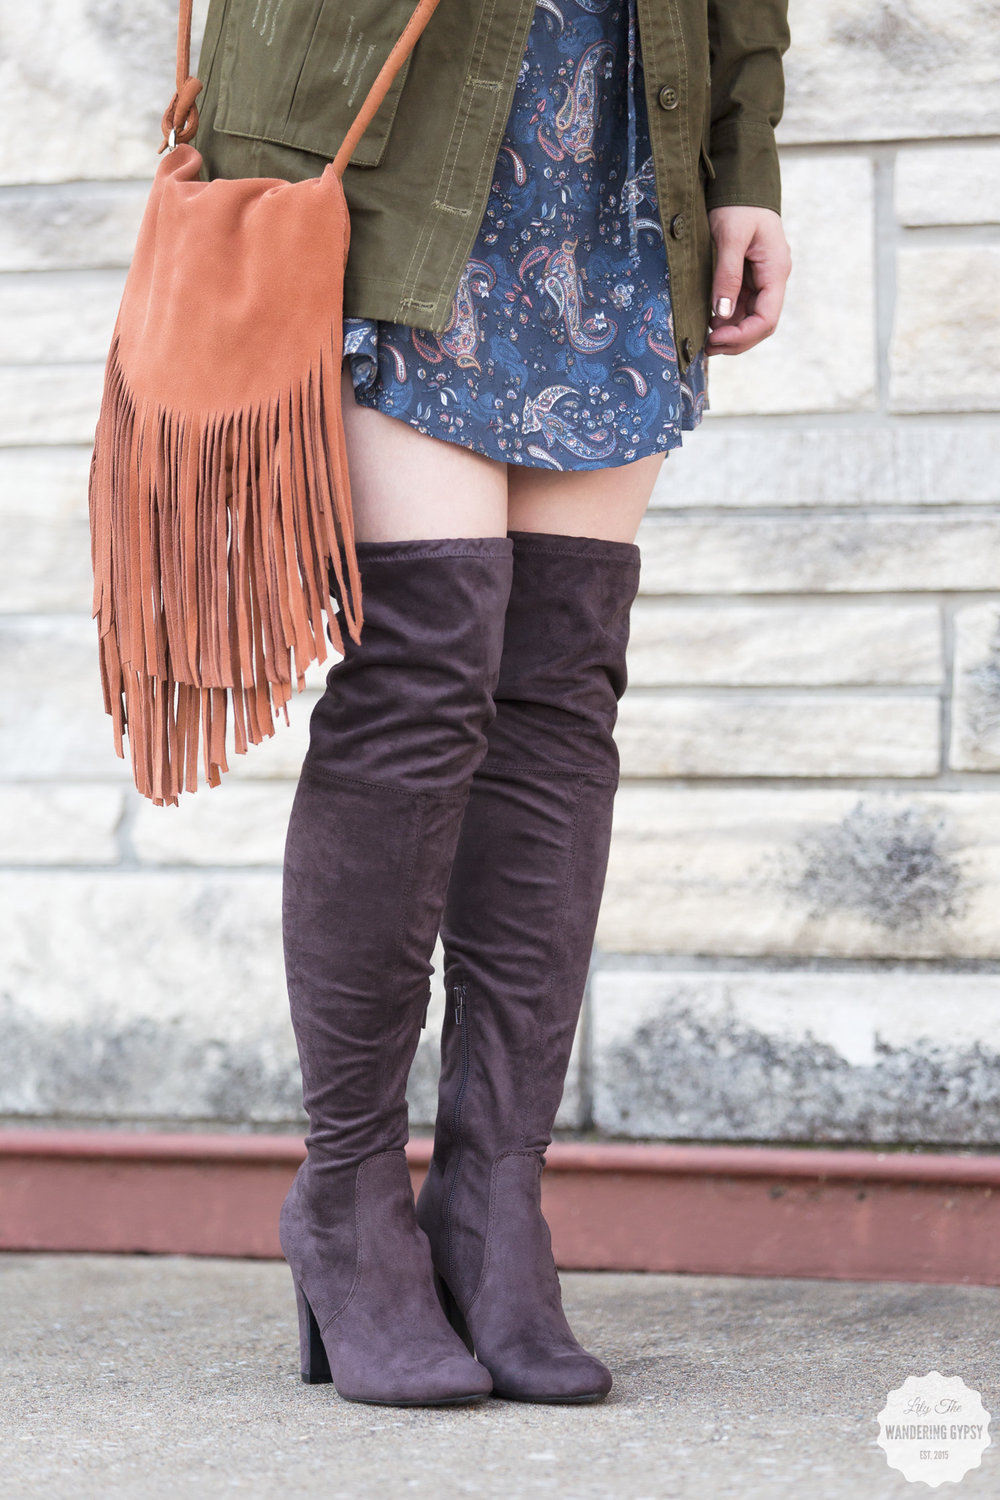 #MyDSW - over the knee boots, fringe purse, paisley dress, army jacket